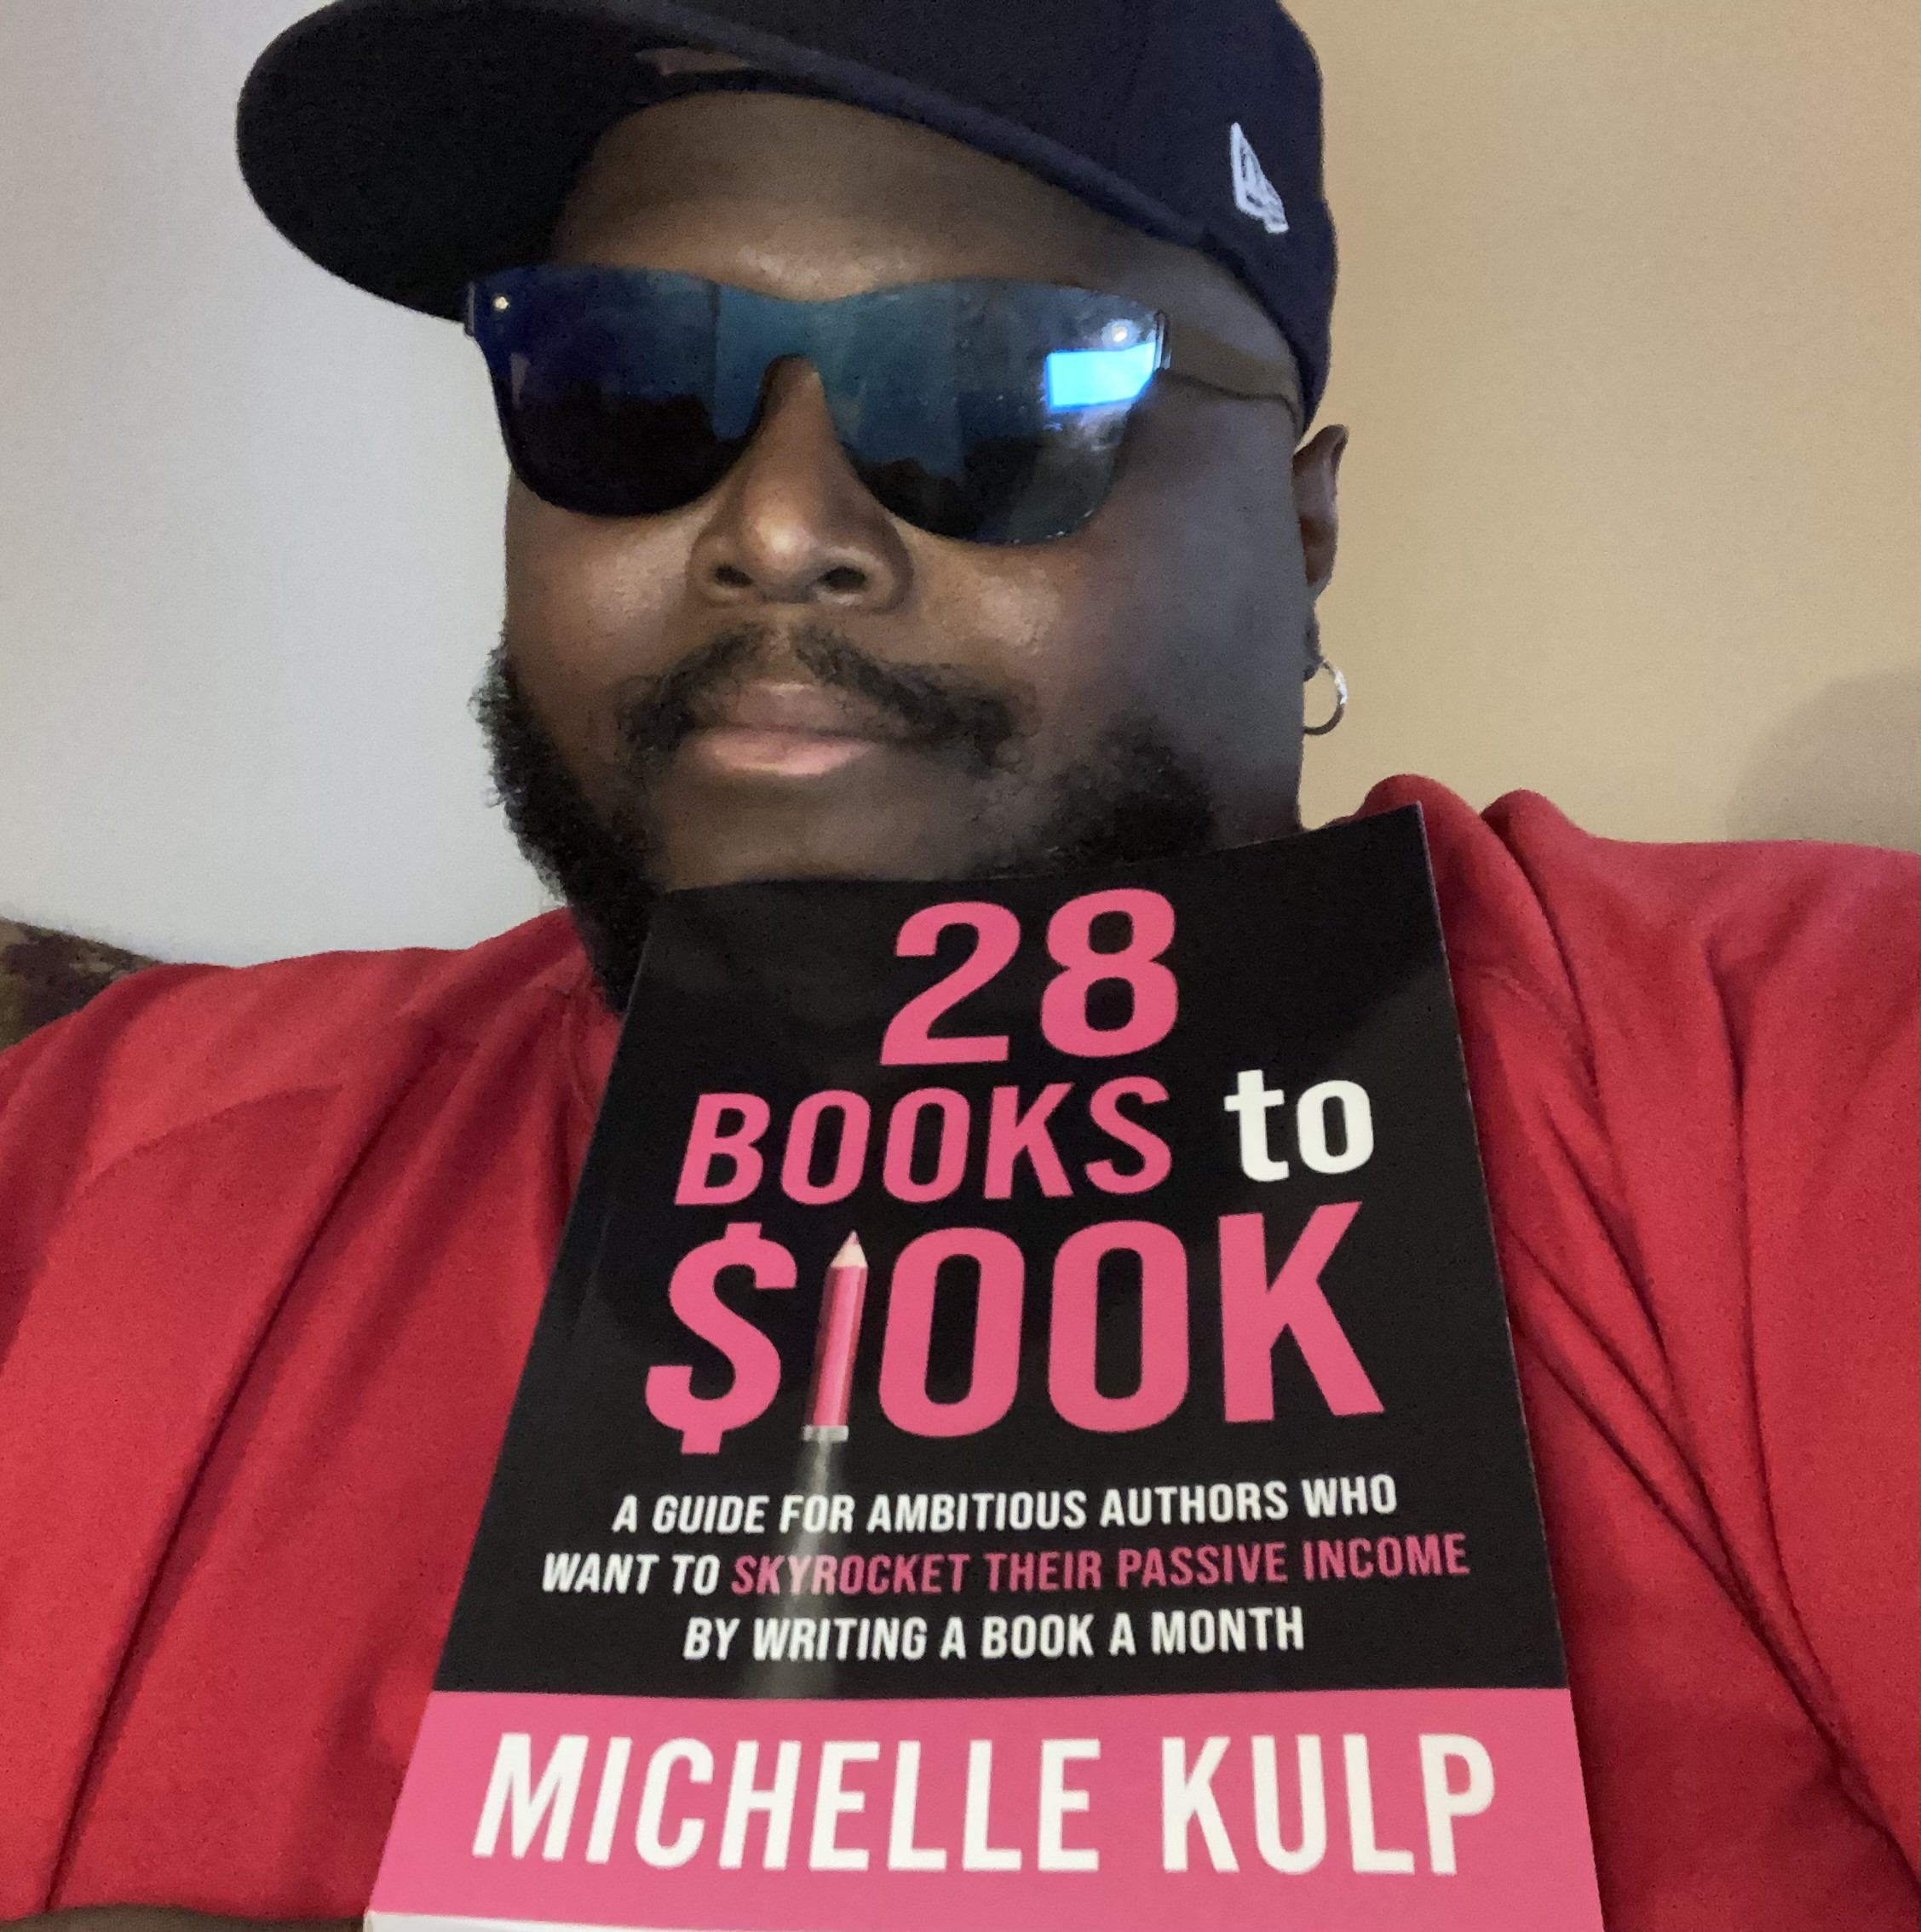 28 Books to 100K by Michelle Kulp